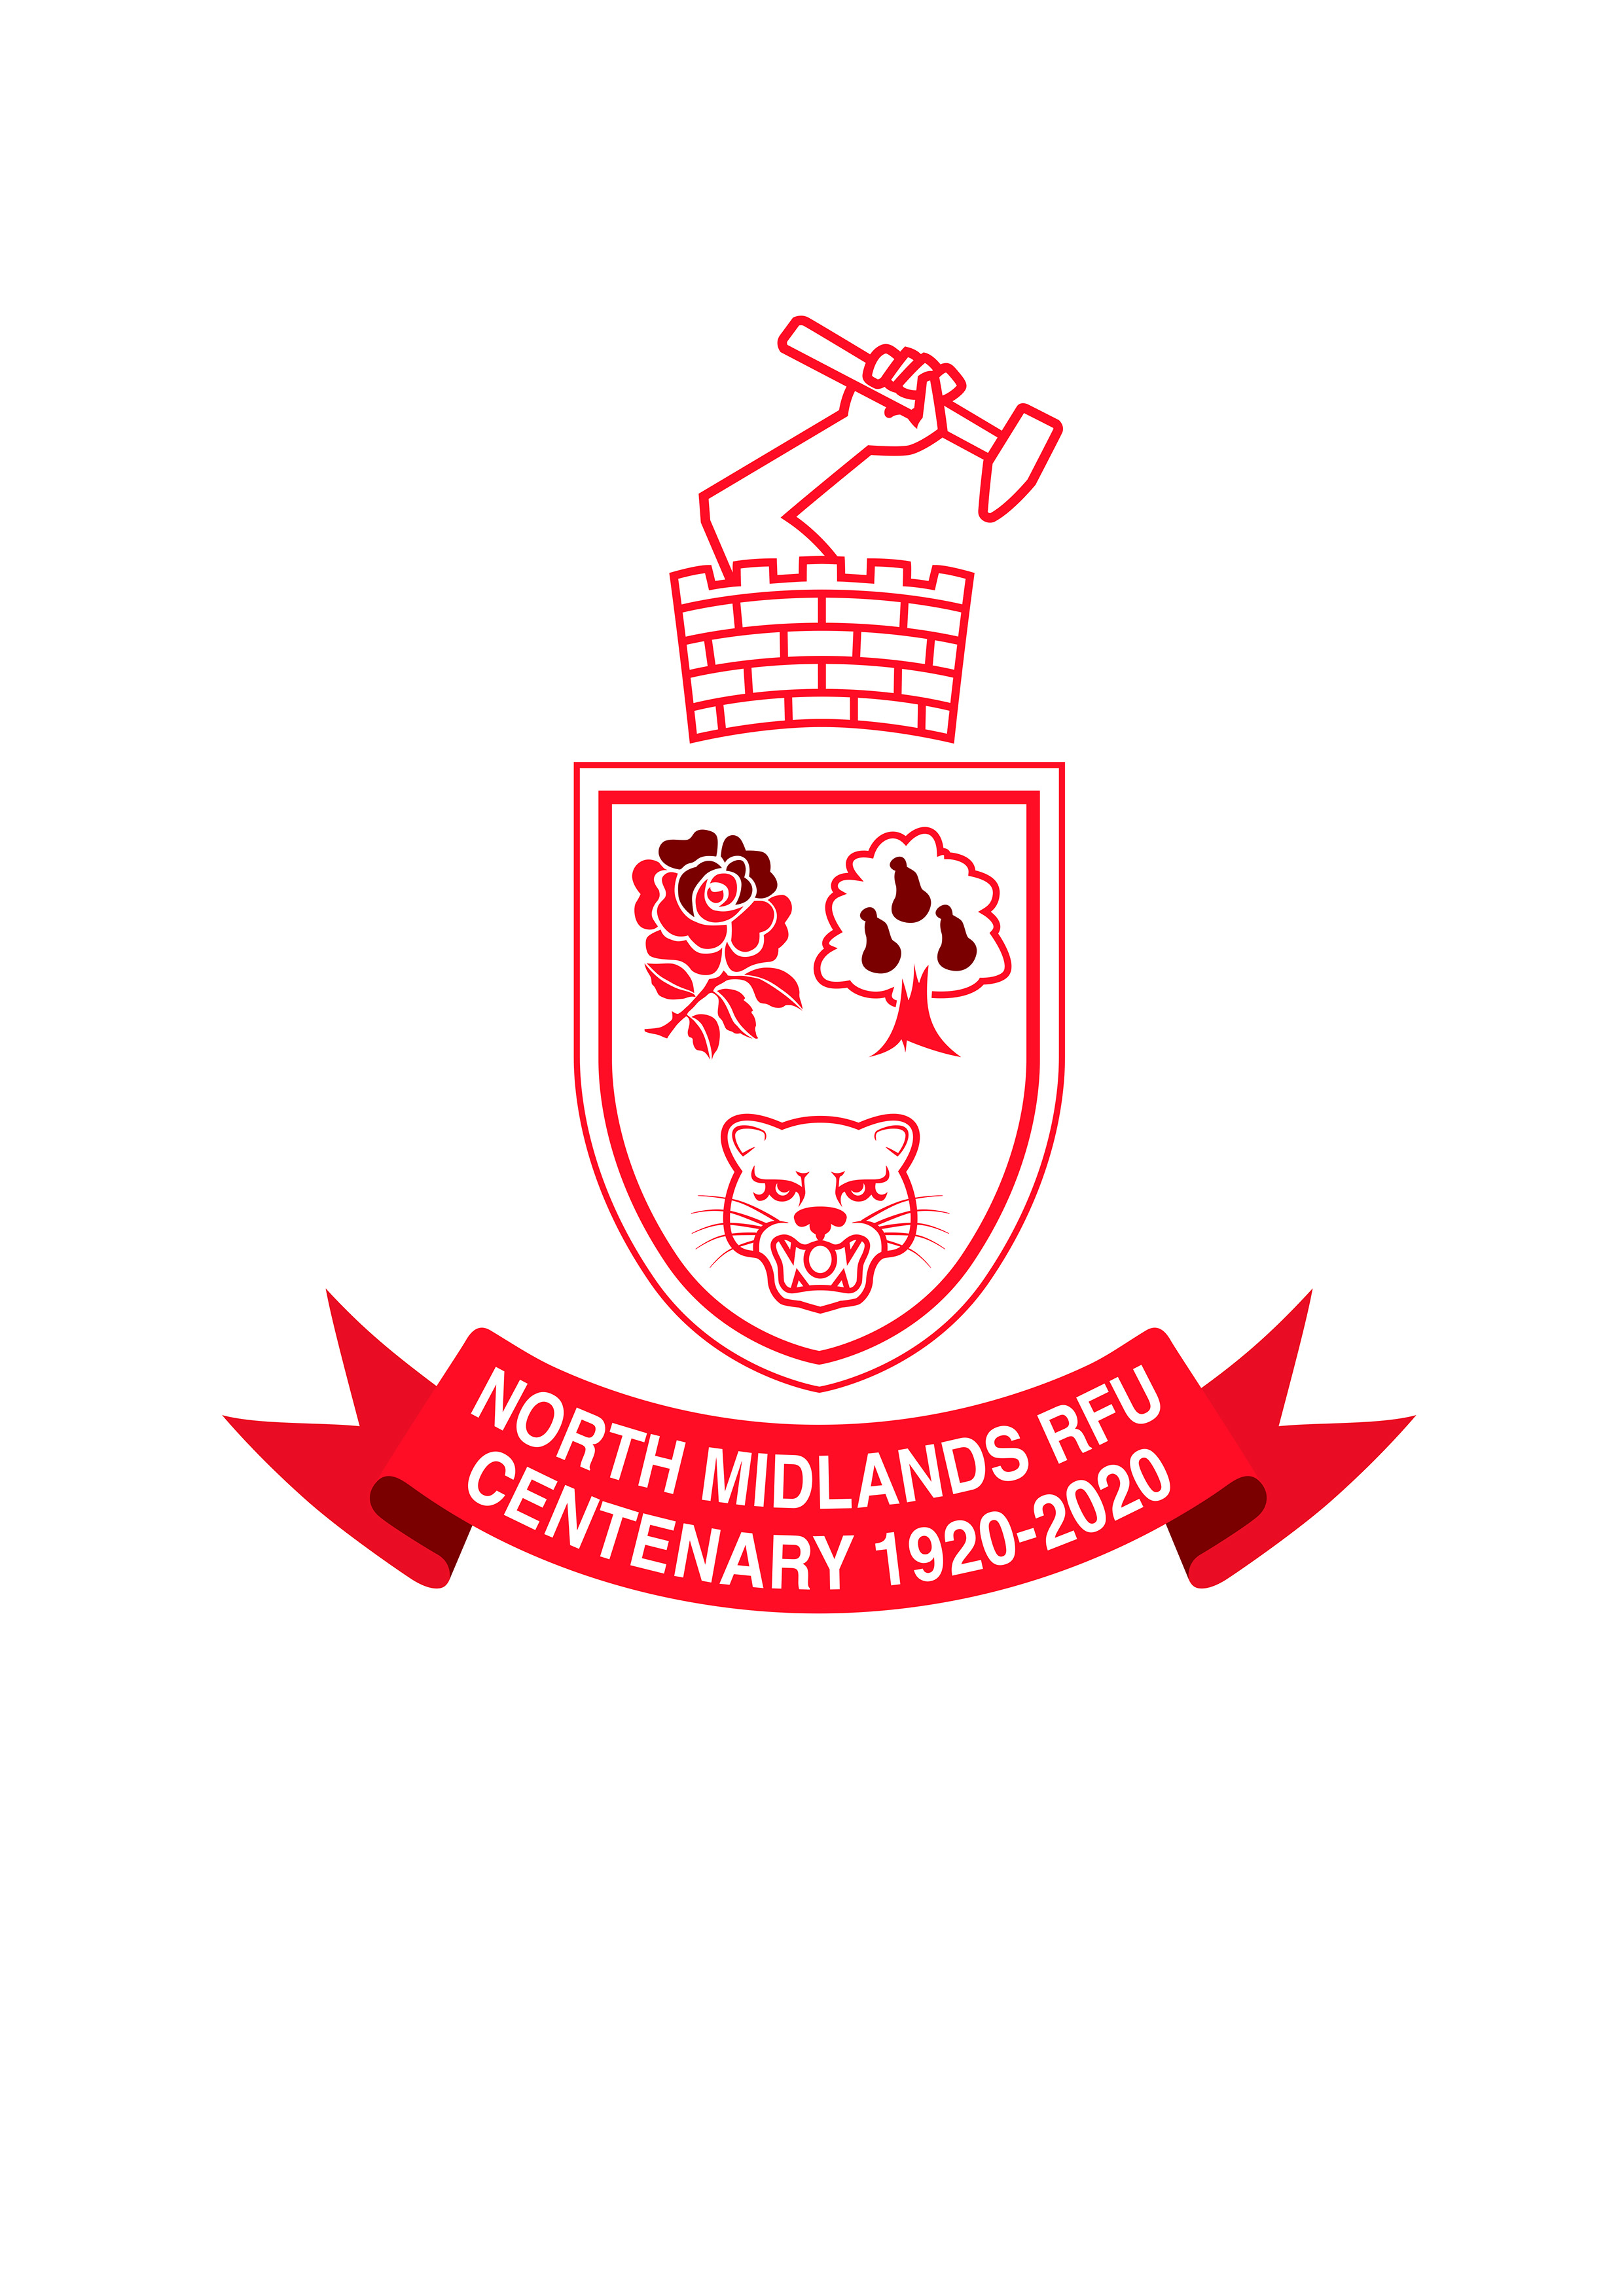 98542_North Midlands Rugby Football Union_Centenary Logo_CH v3